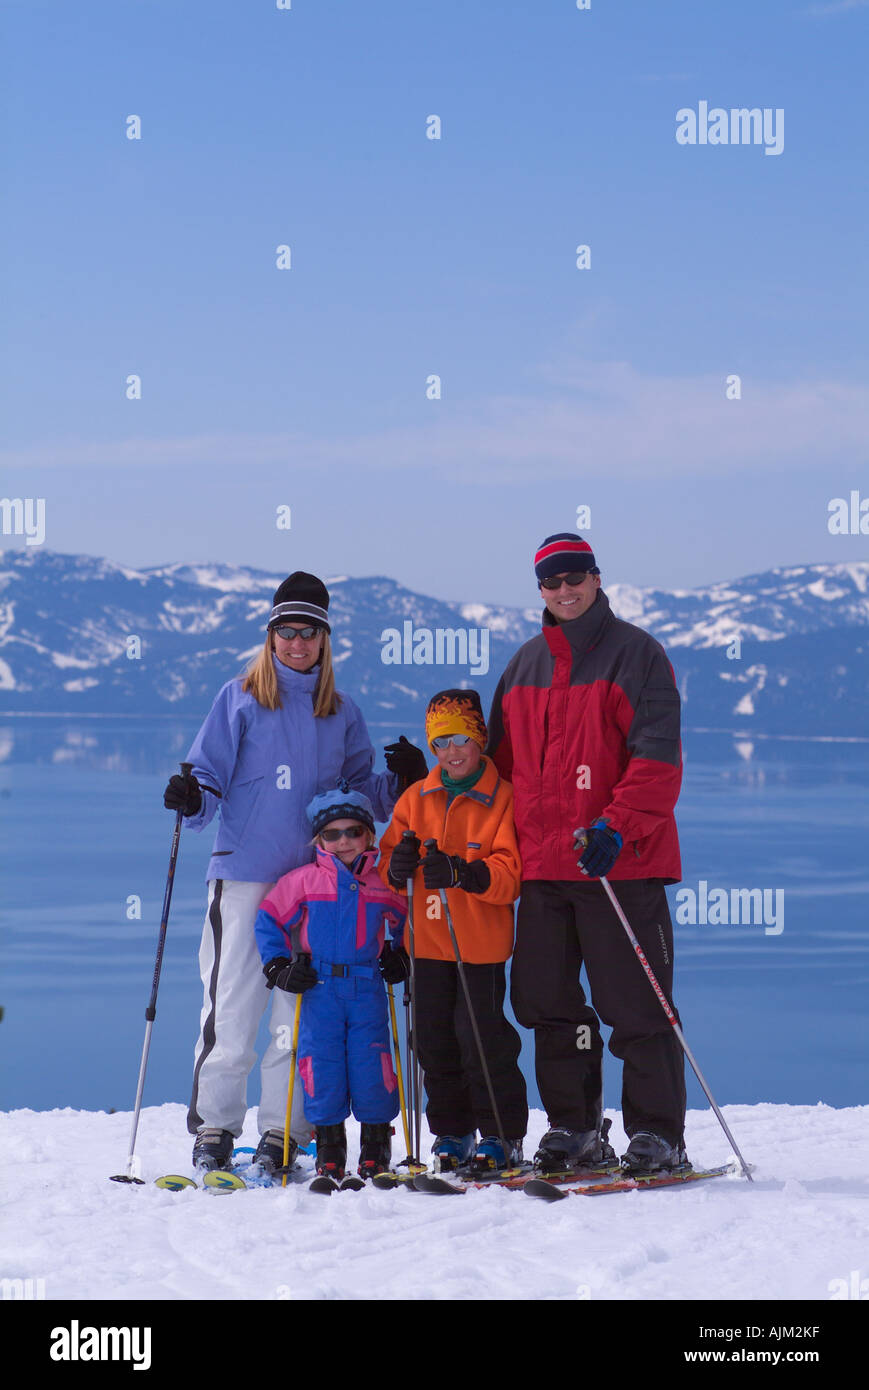 A family posing for a skiing portrait at Daimond Peak NV - Stock Image